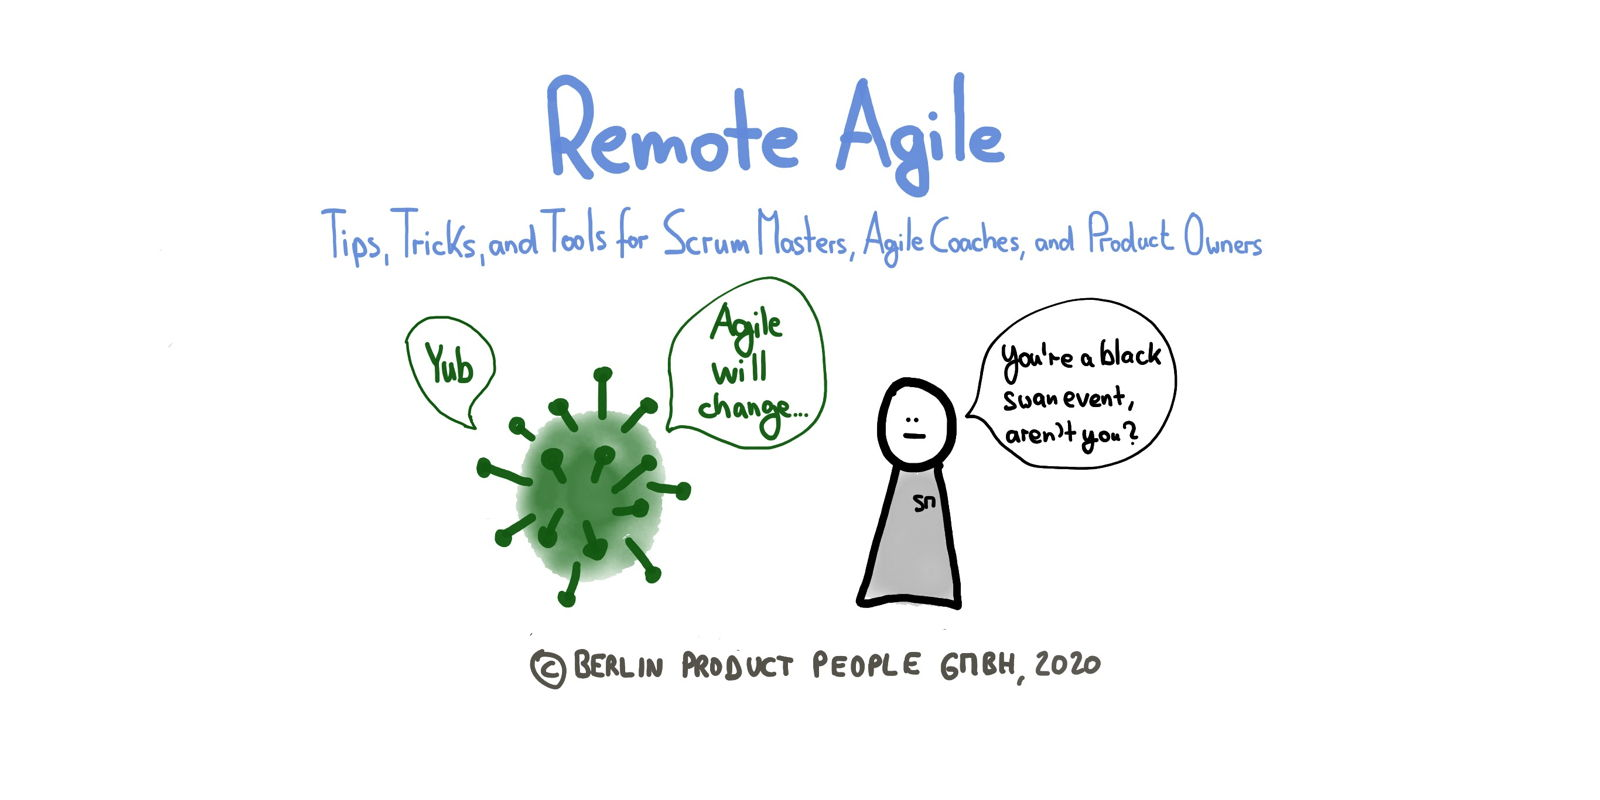 Remote Agile (Part 1): Practices & Tools for Scrum Masters, Agile Coaches, and Product Owners